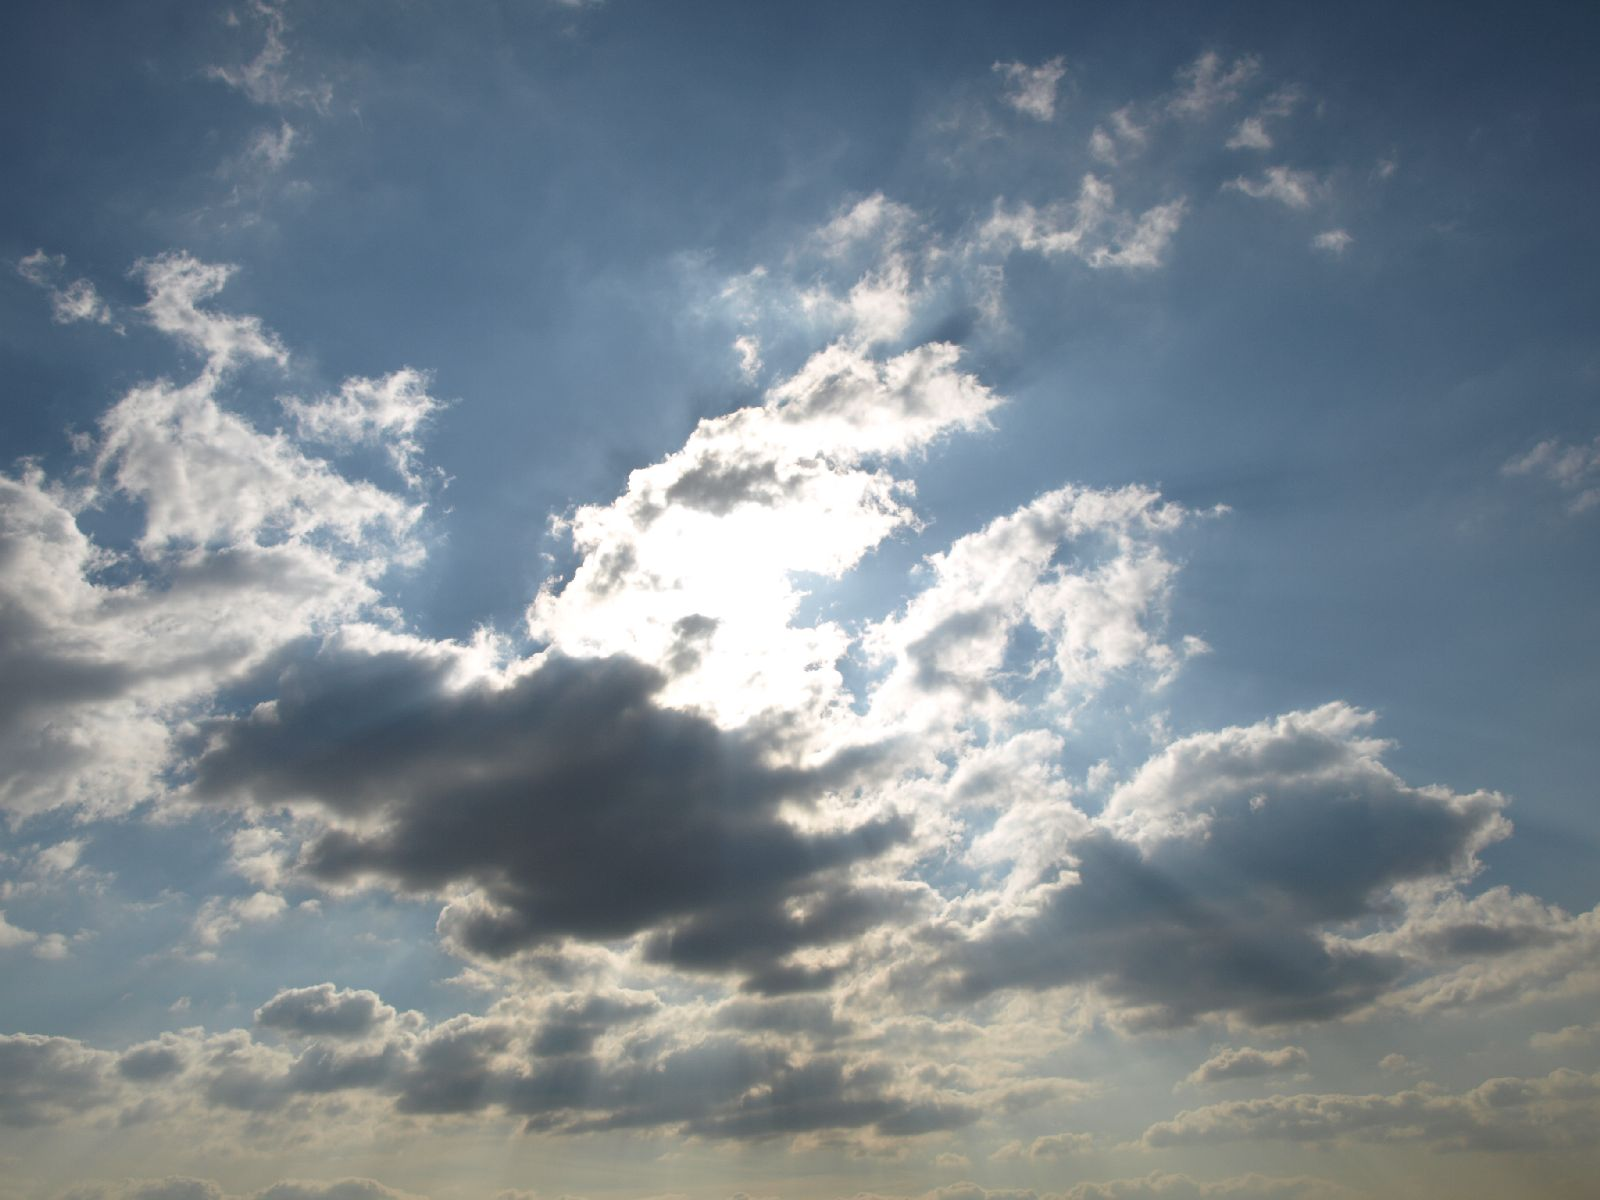 Sky_Clouds_Photo_Texture_A_P4171335